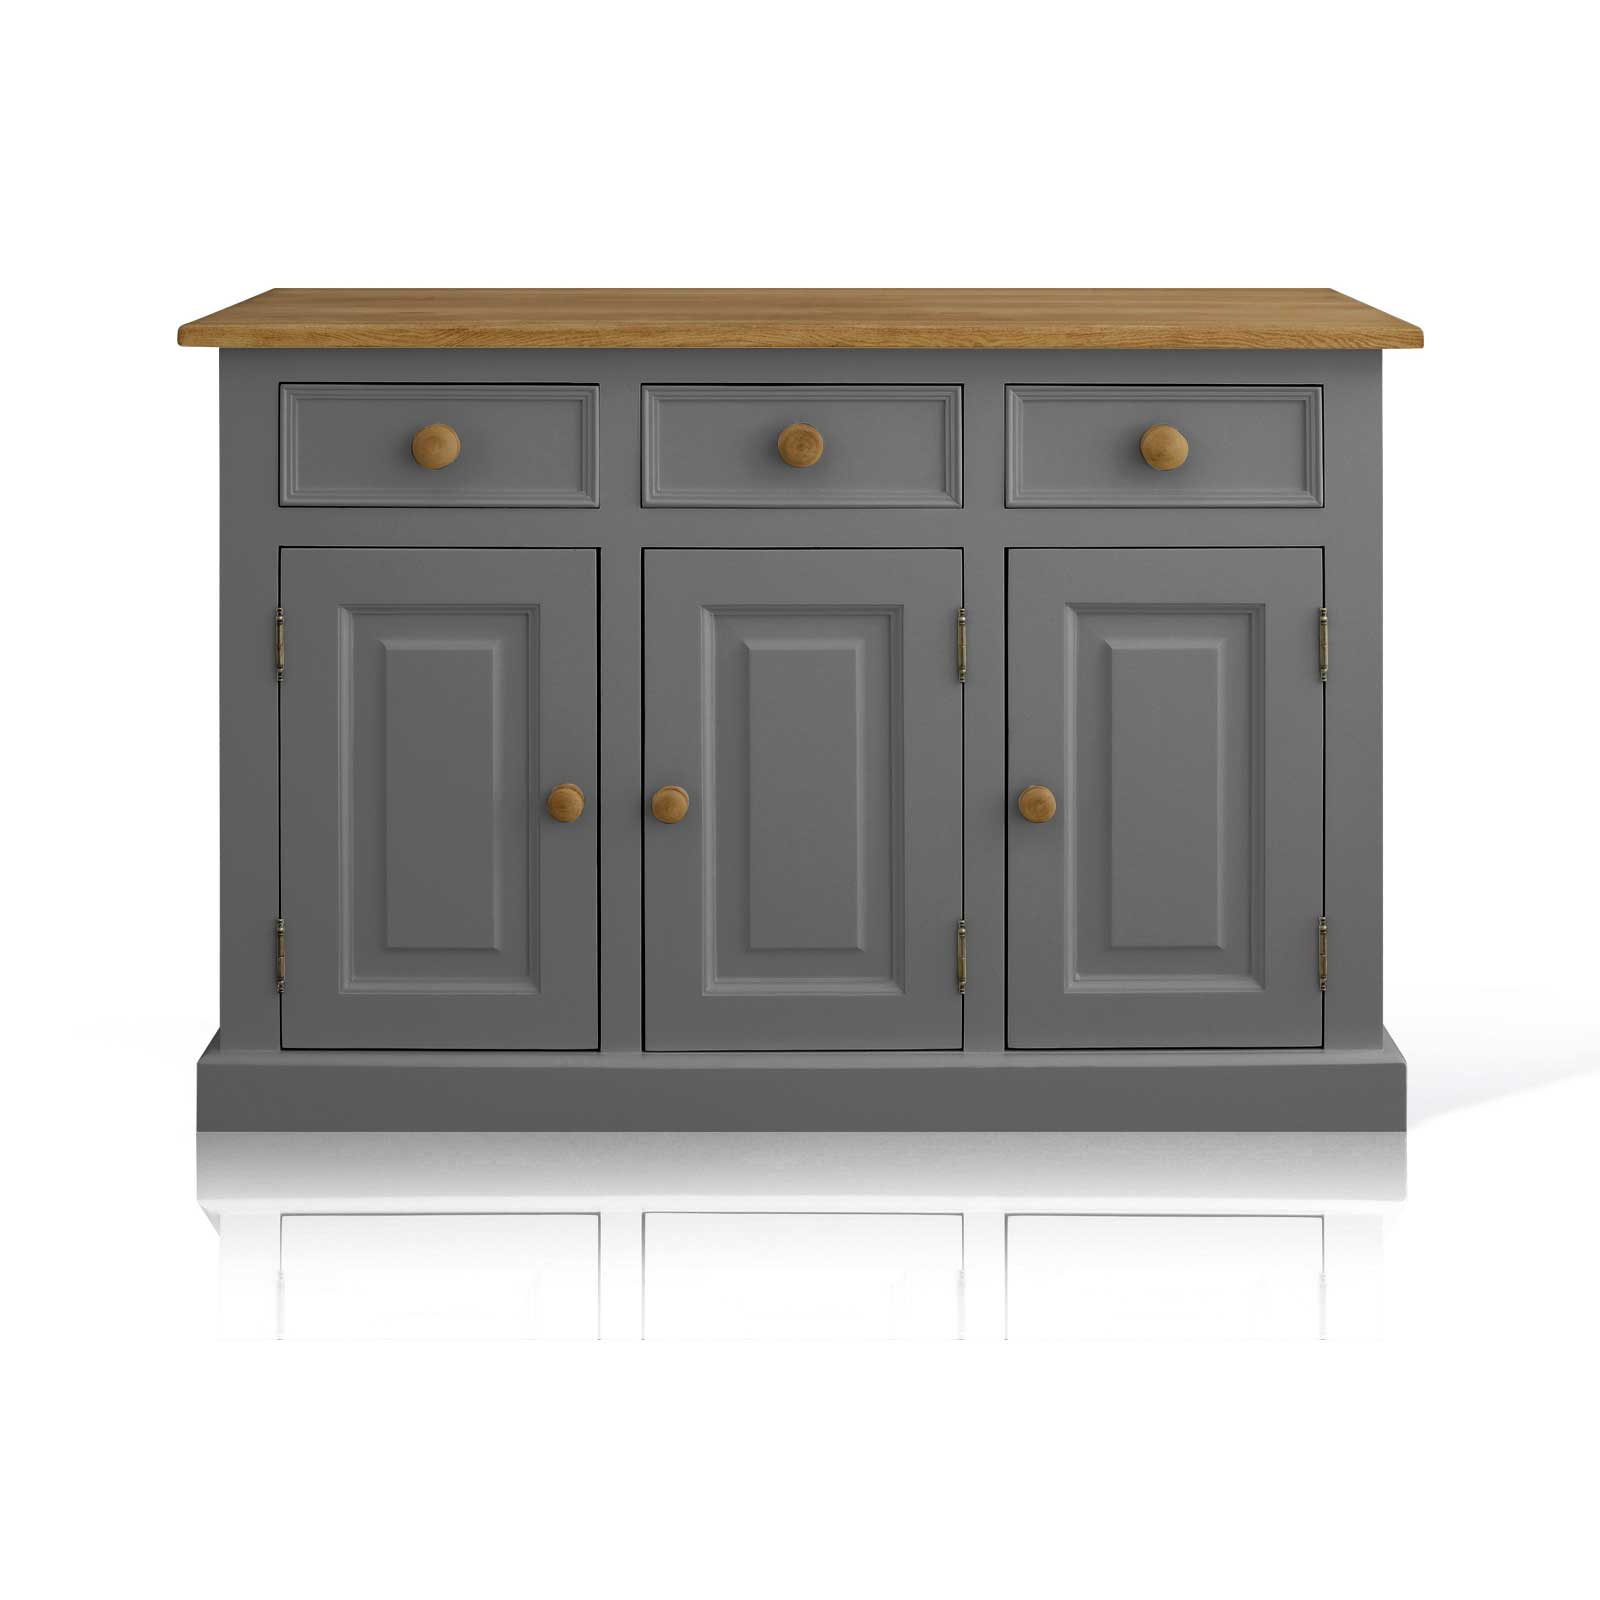 Soho Dark Grey Painted Argyll 3 Door 3 Drawer Dresser_1